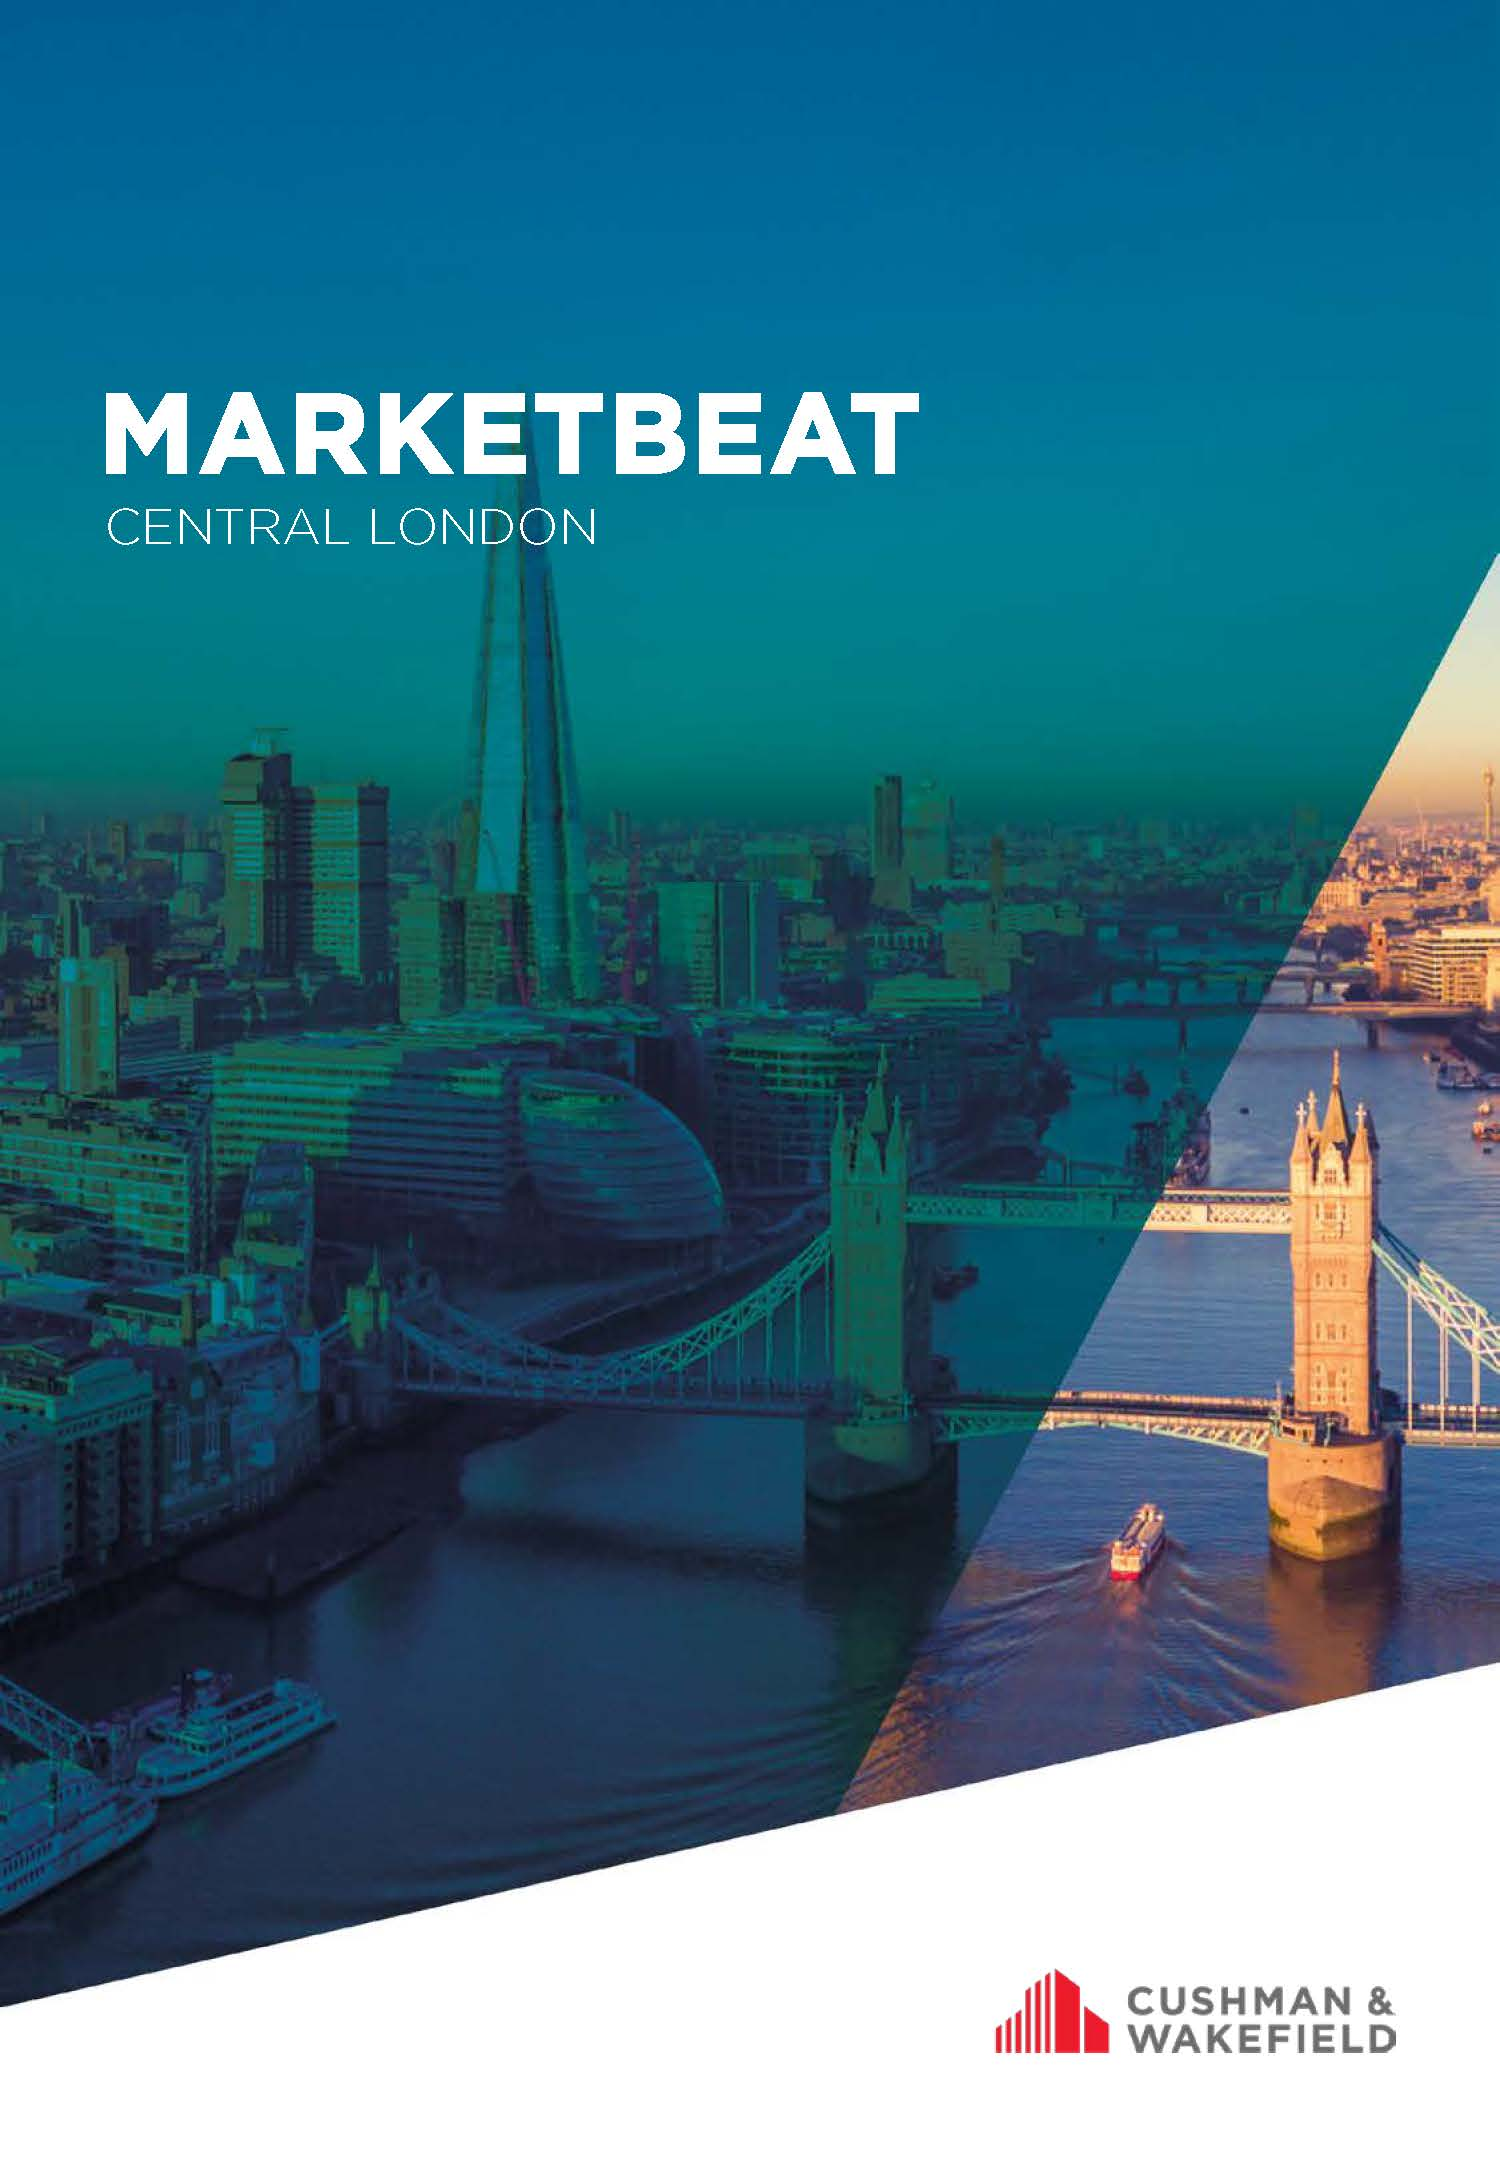 Central London Marketbeat cover aerial view of The Thames